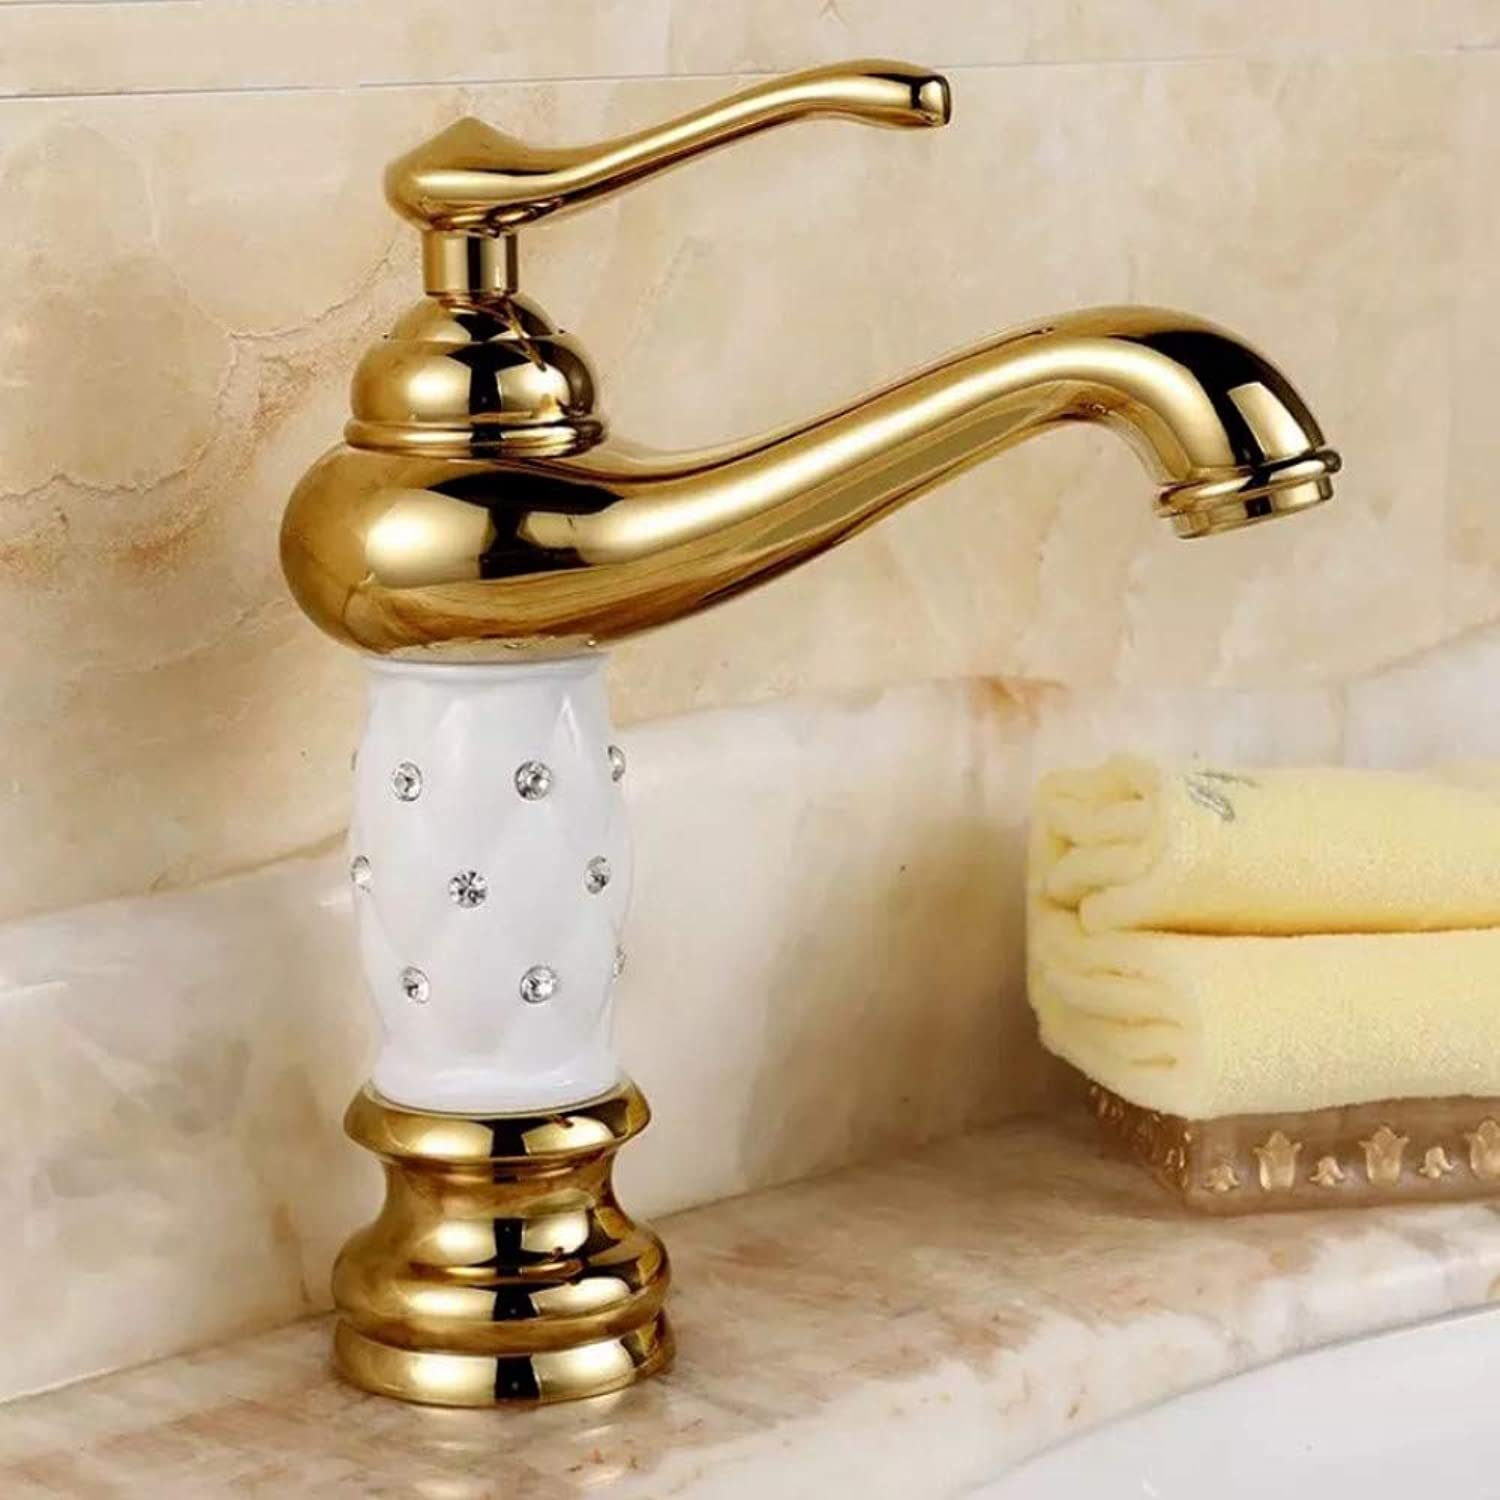 Lddpl Tap Elegant Luxury golden Crystal Hot&Cold Water Bathroom Single Hole Basin Faucet with Diamond Deck Mounted Brass Mixer 1044